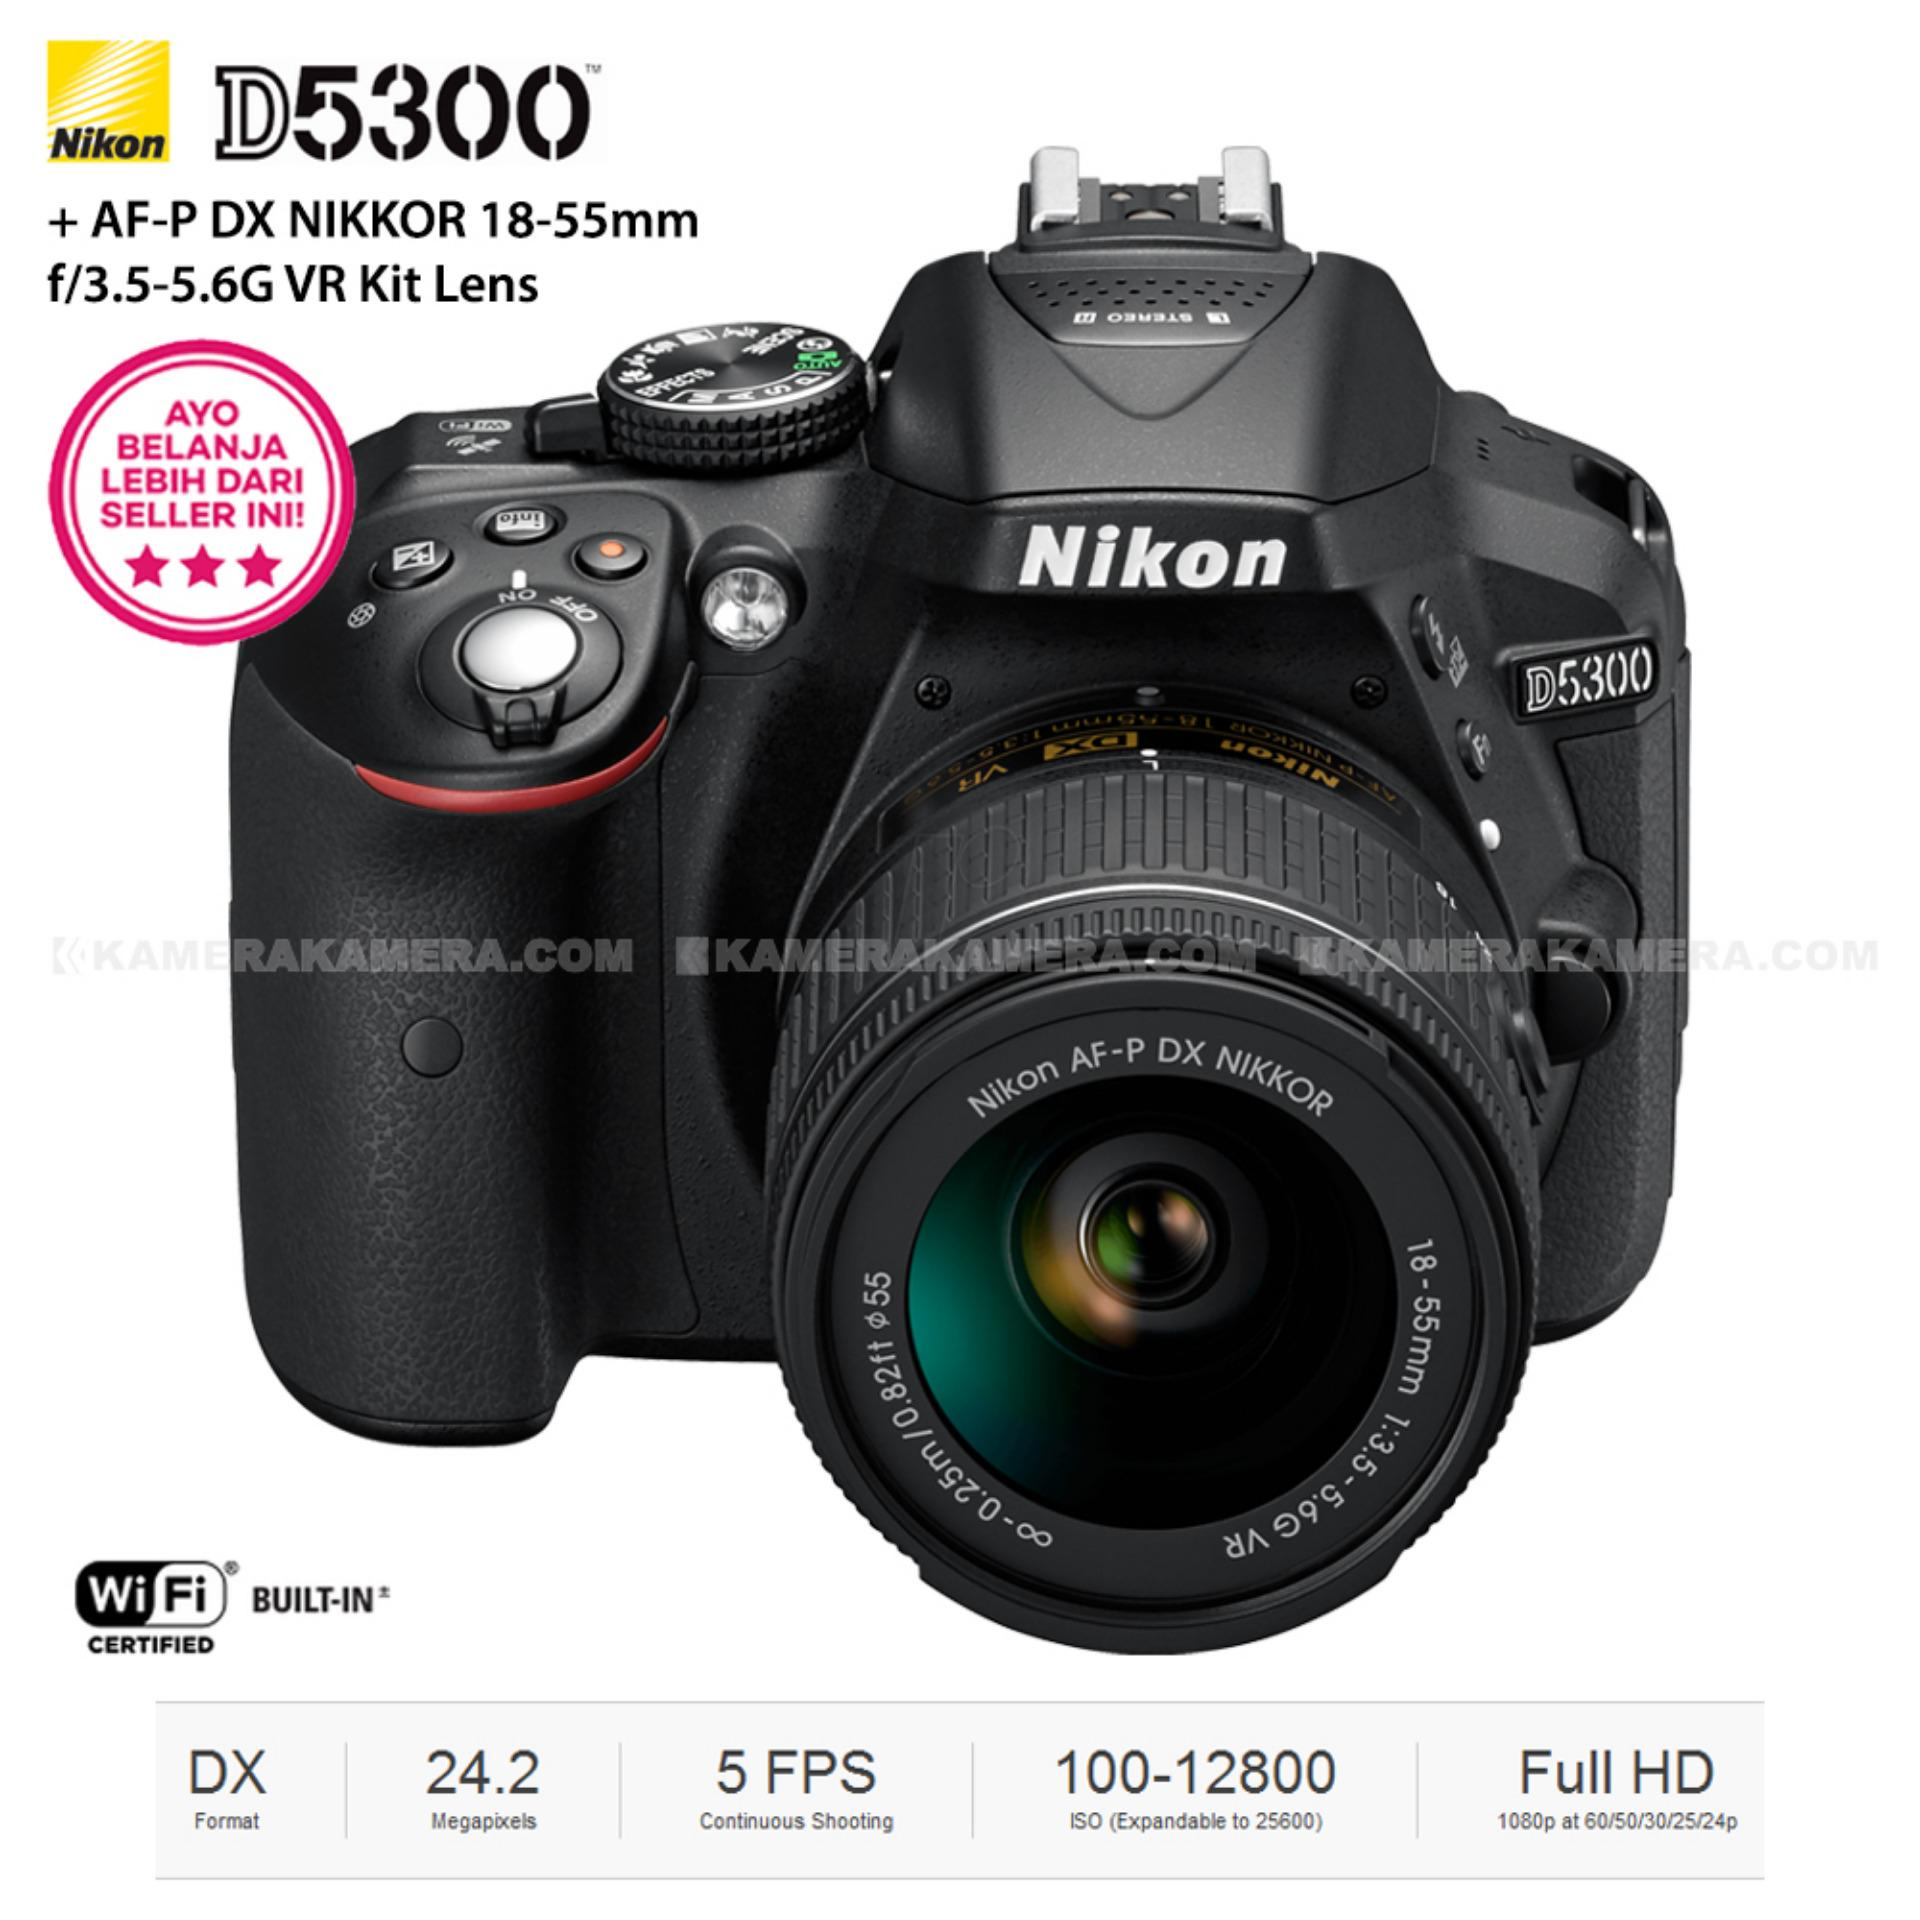 Jual Nikon D5300 Af P Dx Nikkor 18 55Mm F 3 5 5 6G Vr Kit 24 2Mp Black Termurah